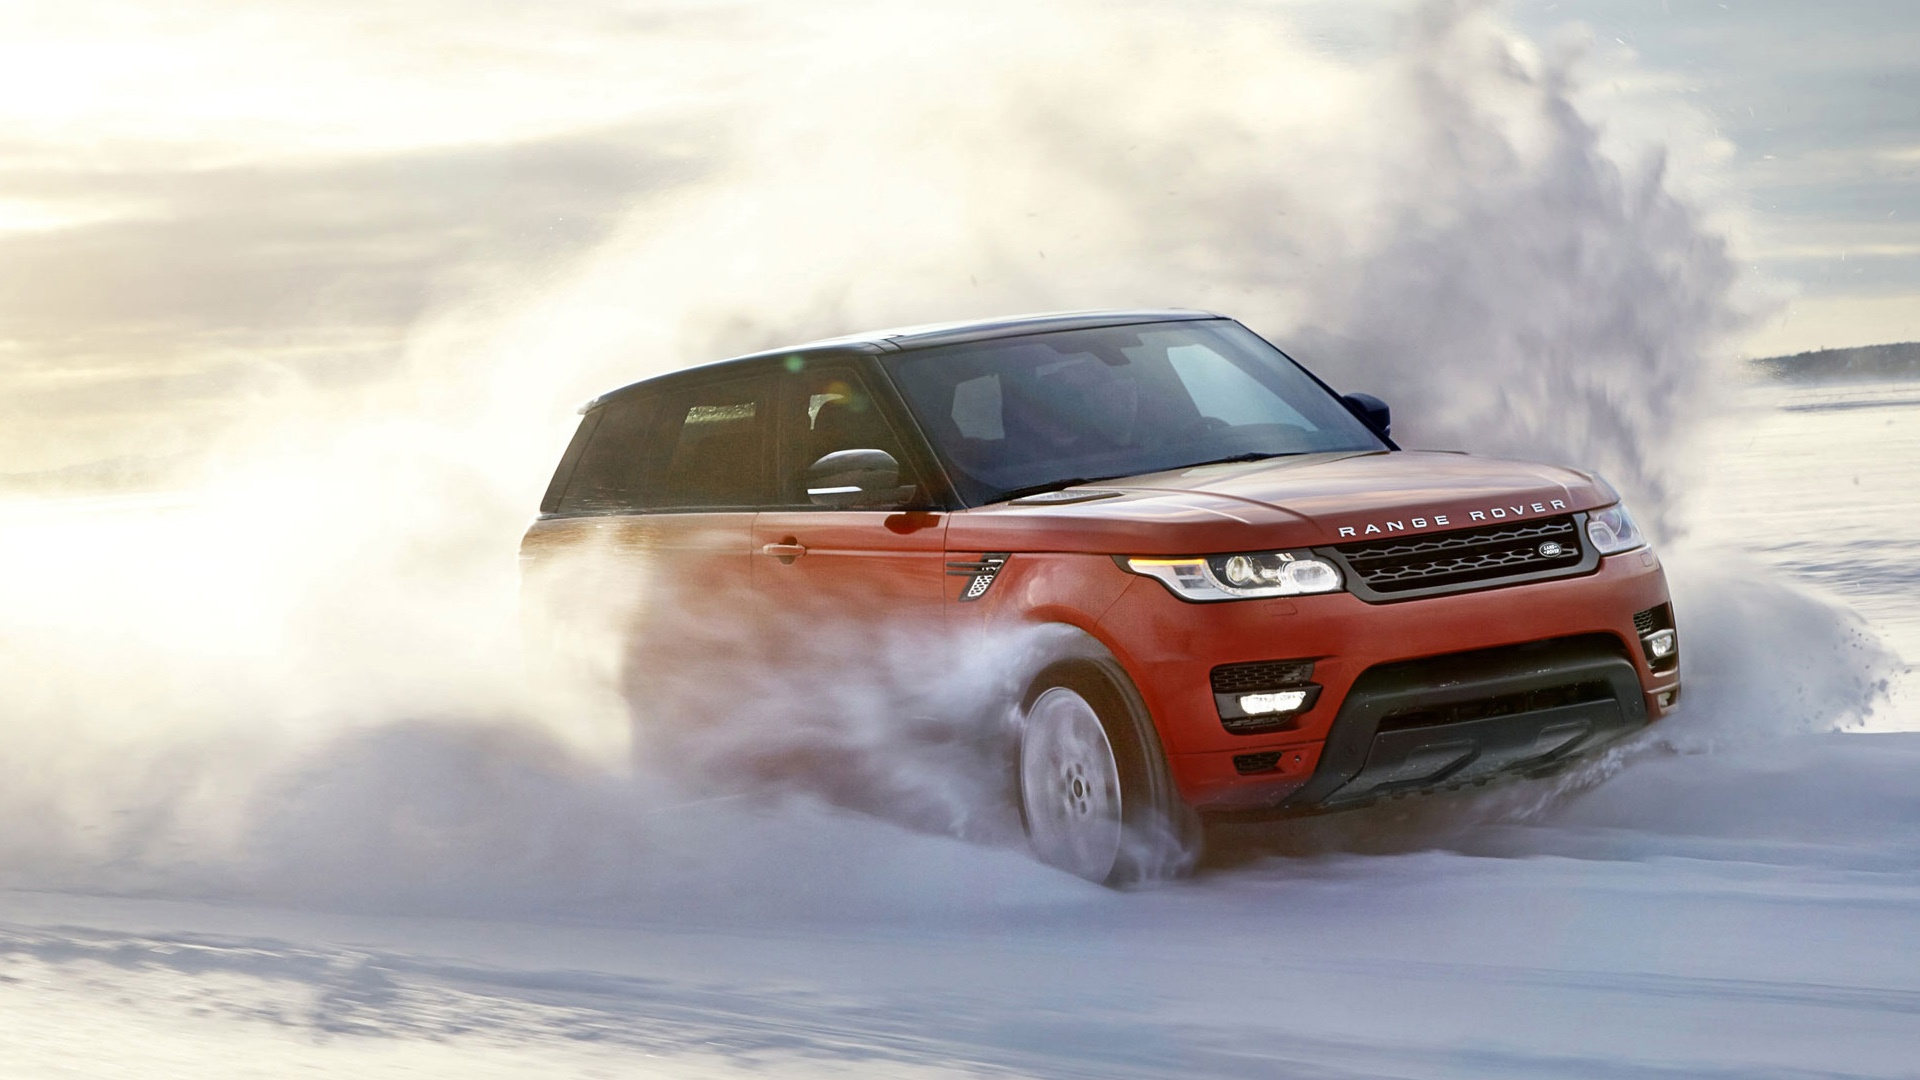 2014 land rover range rover 4wd    WE Love Rides HD Wallpaper